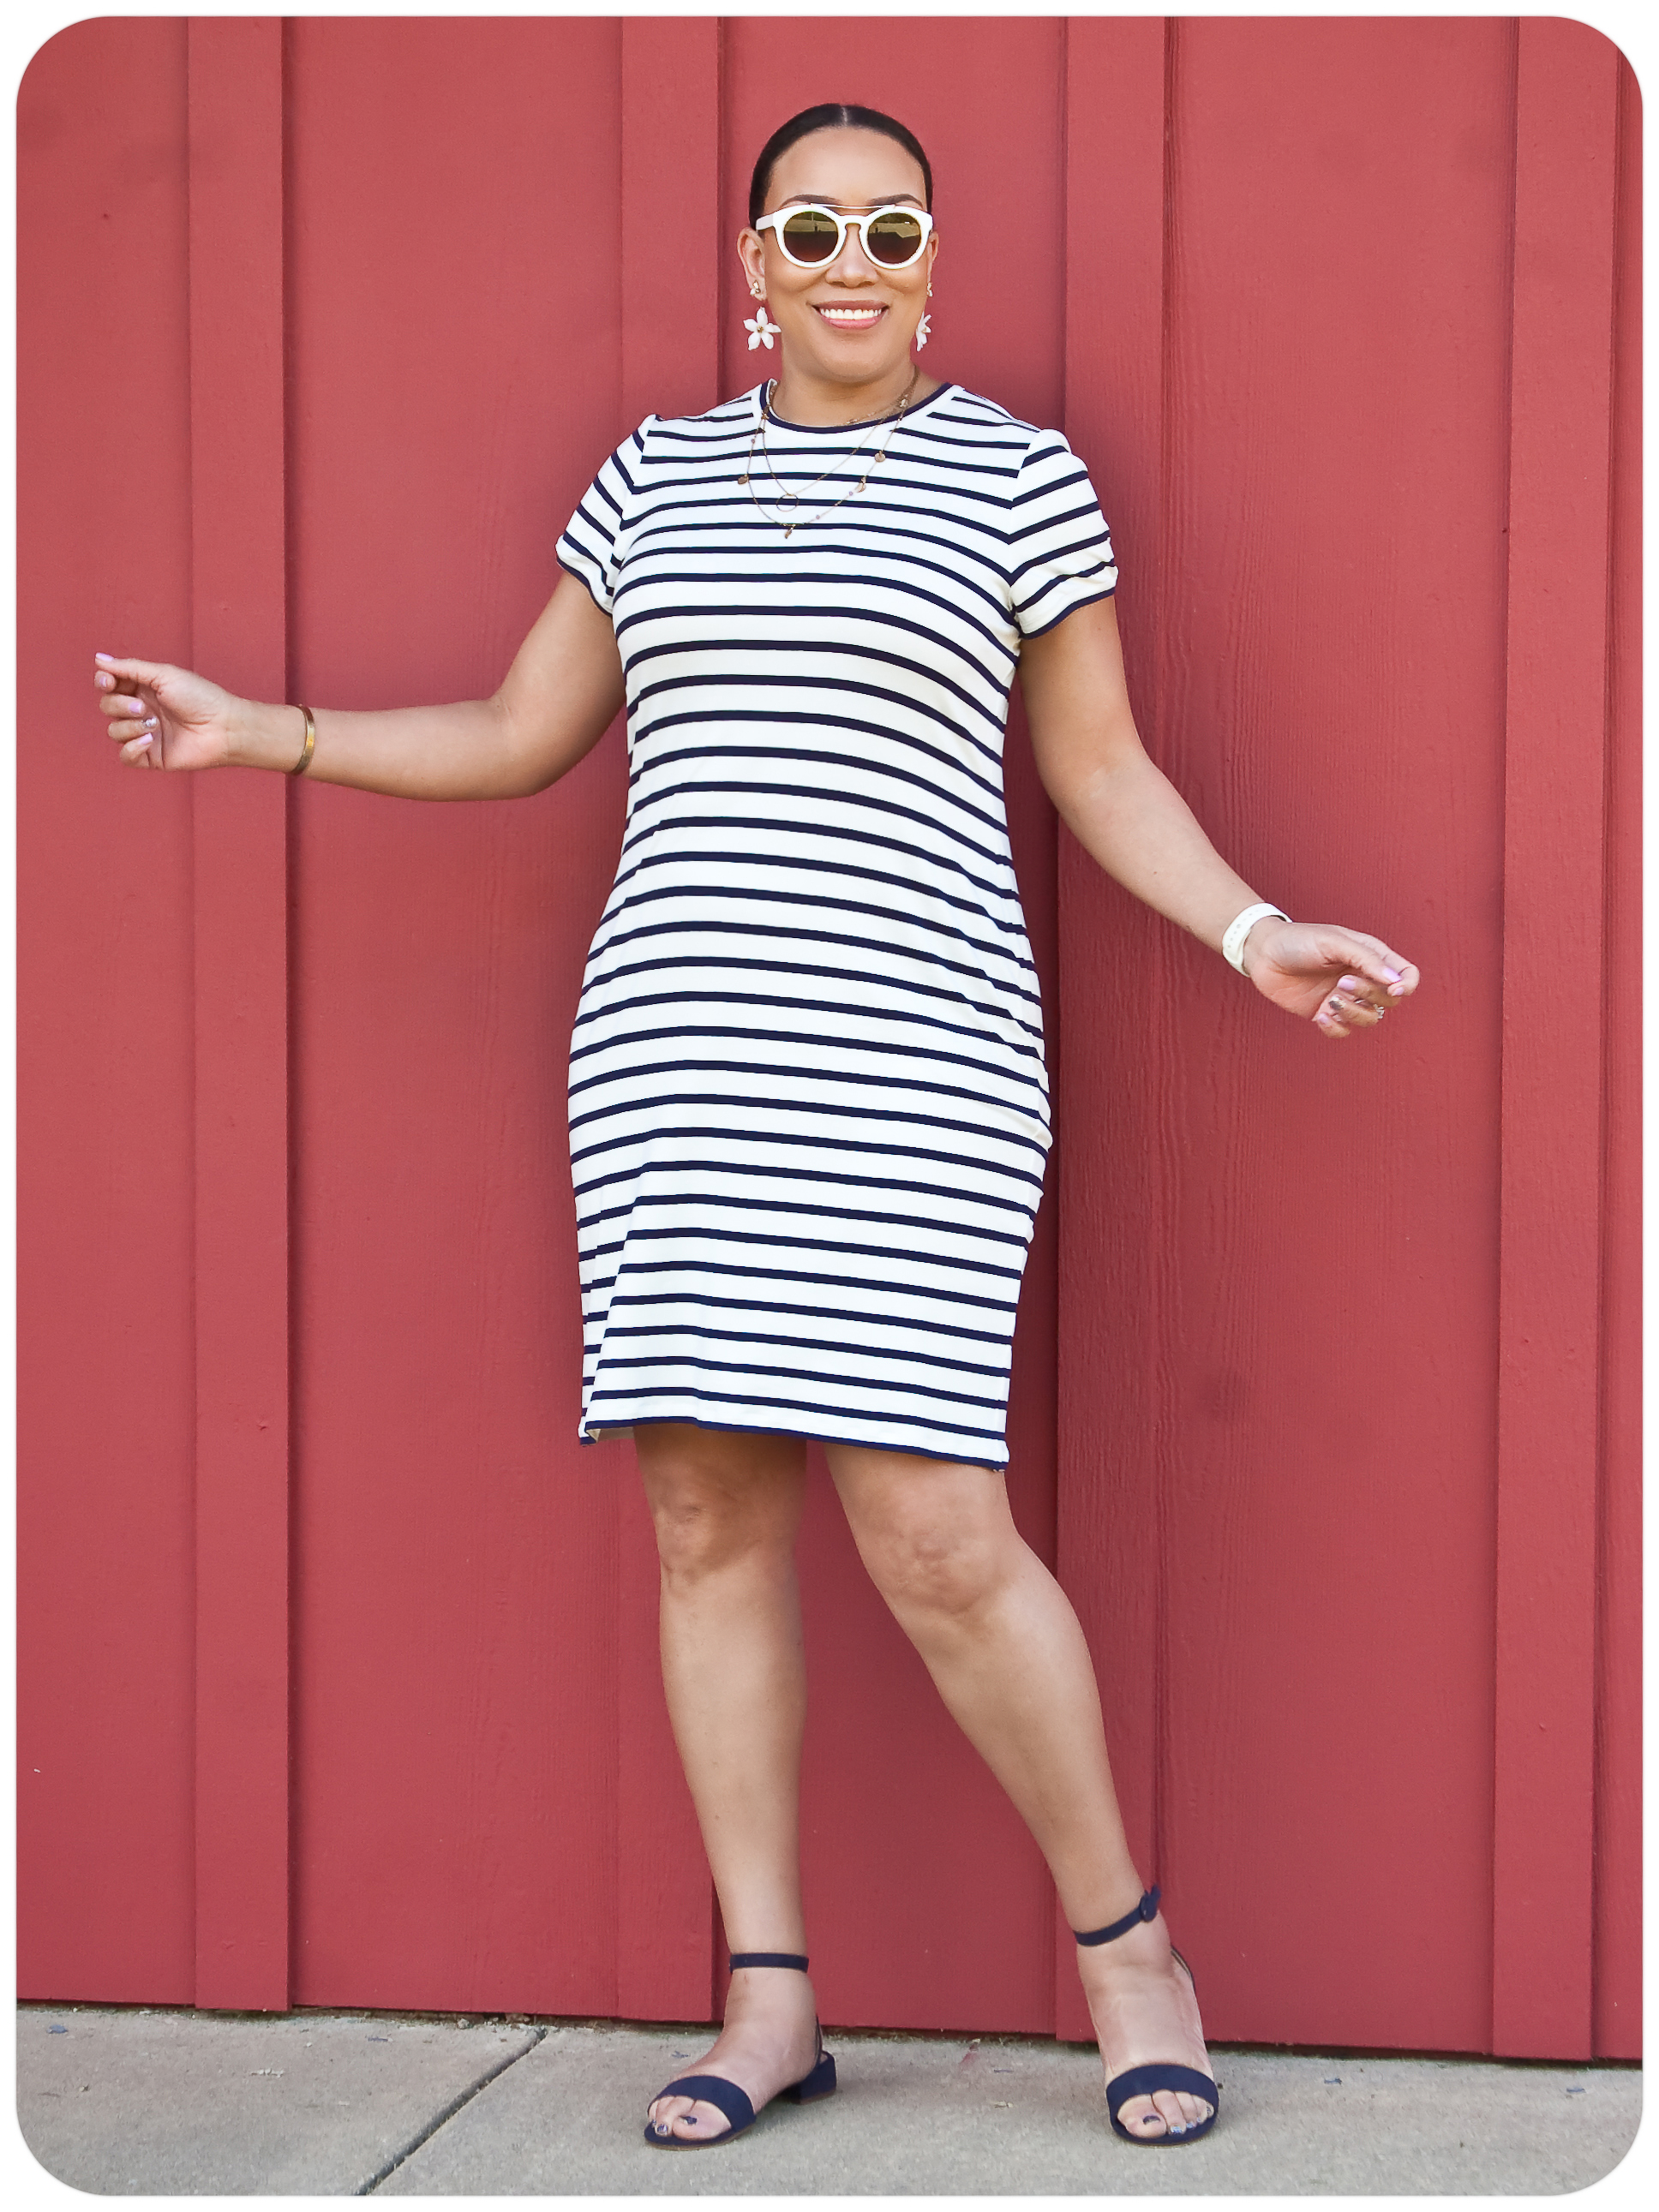 The Rio Ringer T-Shirt Dress - Erica Bunker DIY Style!